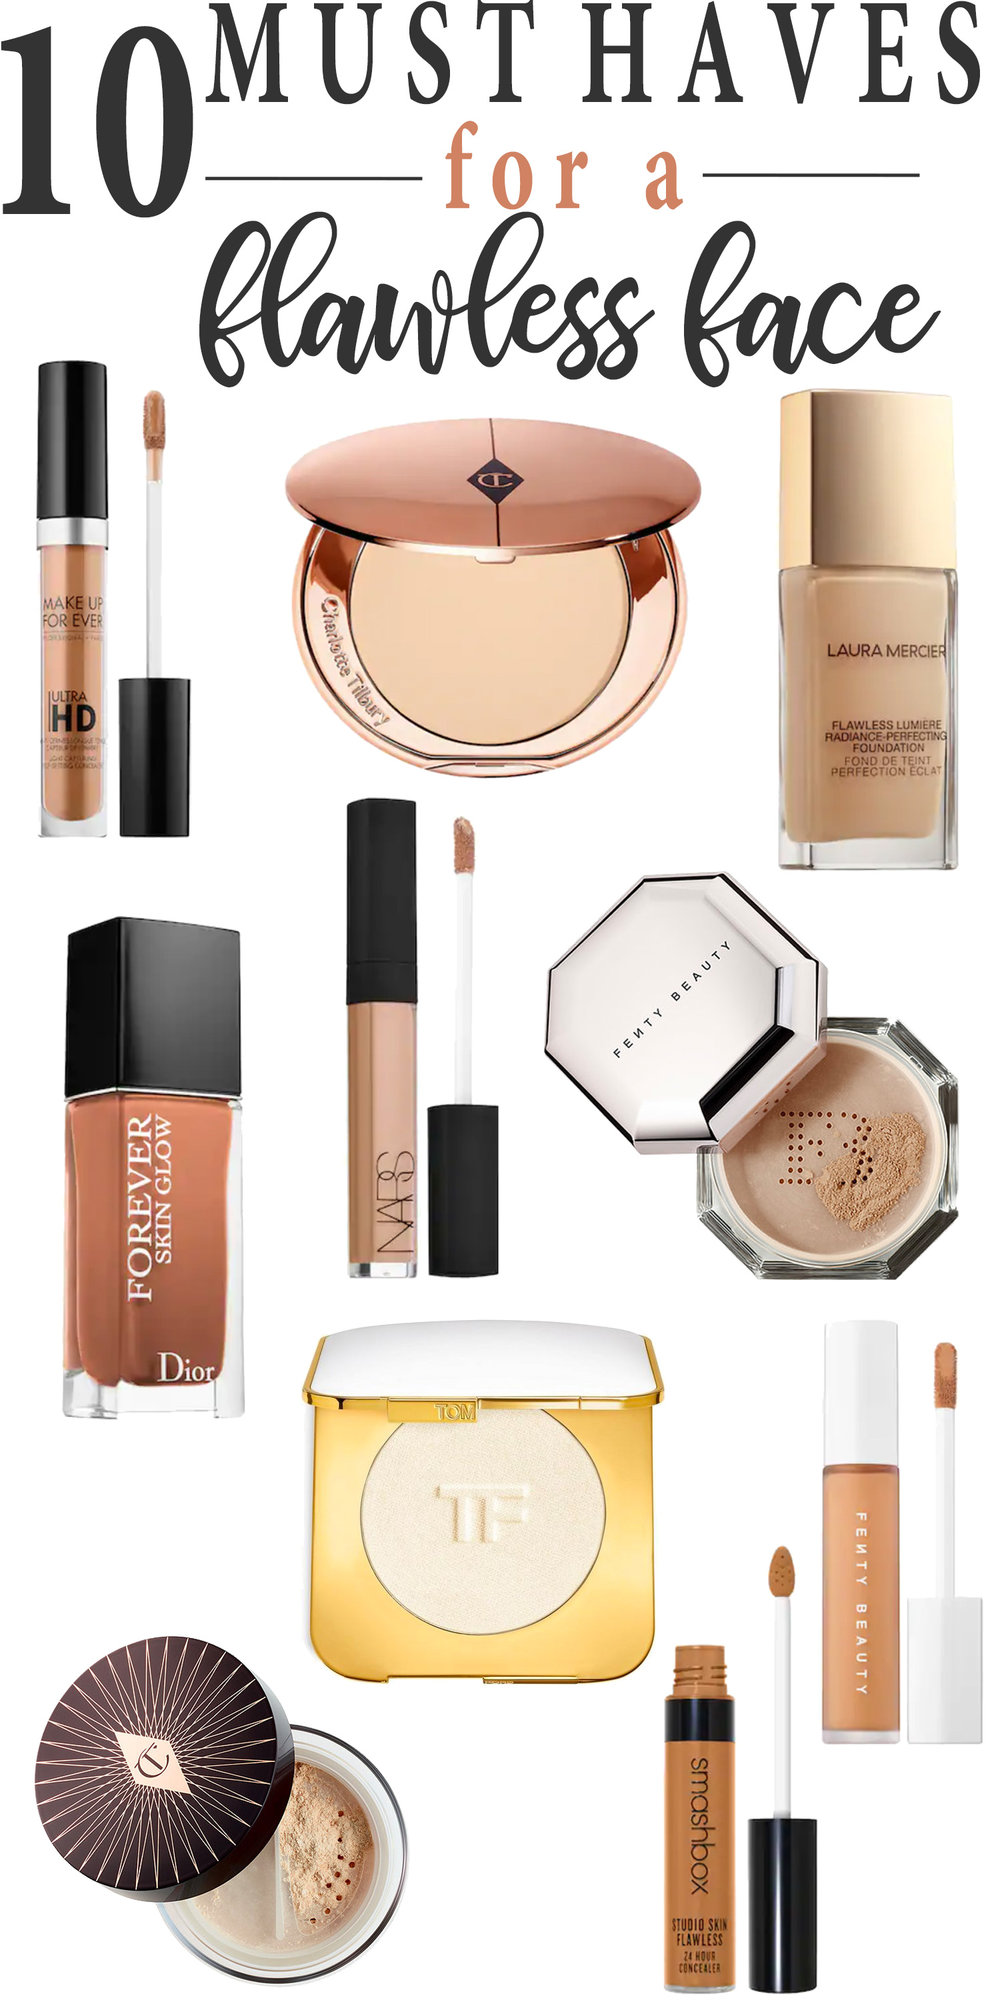 10 Must Haves for a Flawless Face